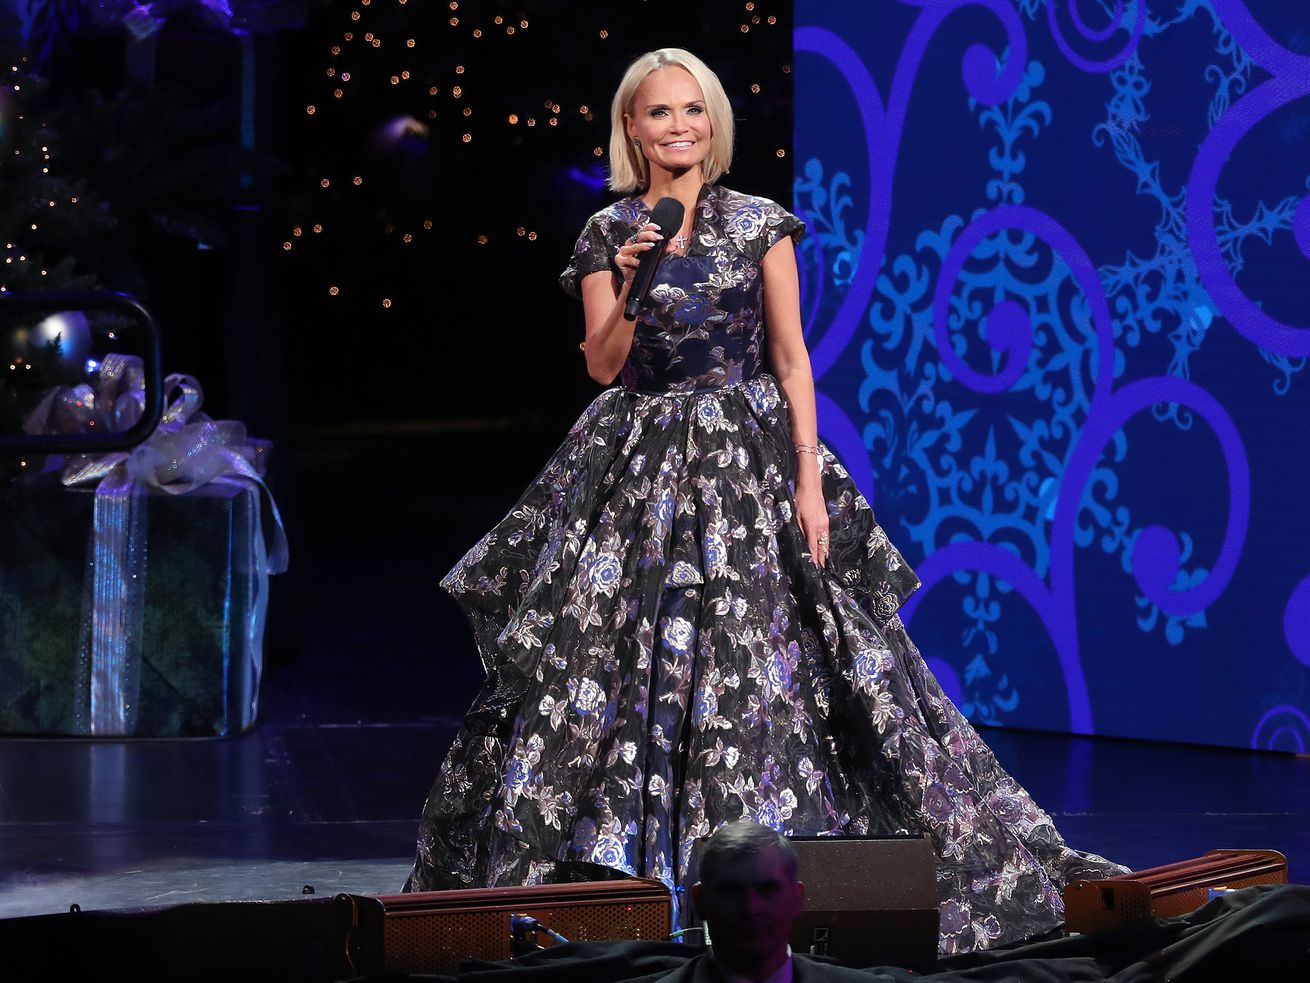 'Speaking the truth': Kristin Chenoweth ranks performing with the Tabernacle Choir in her top 3 all-time moments